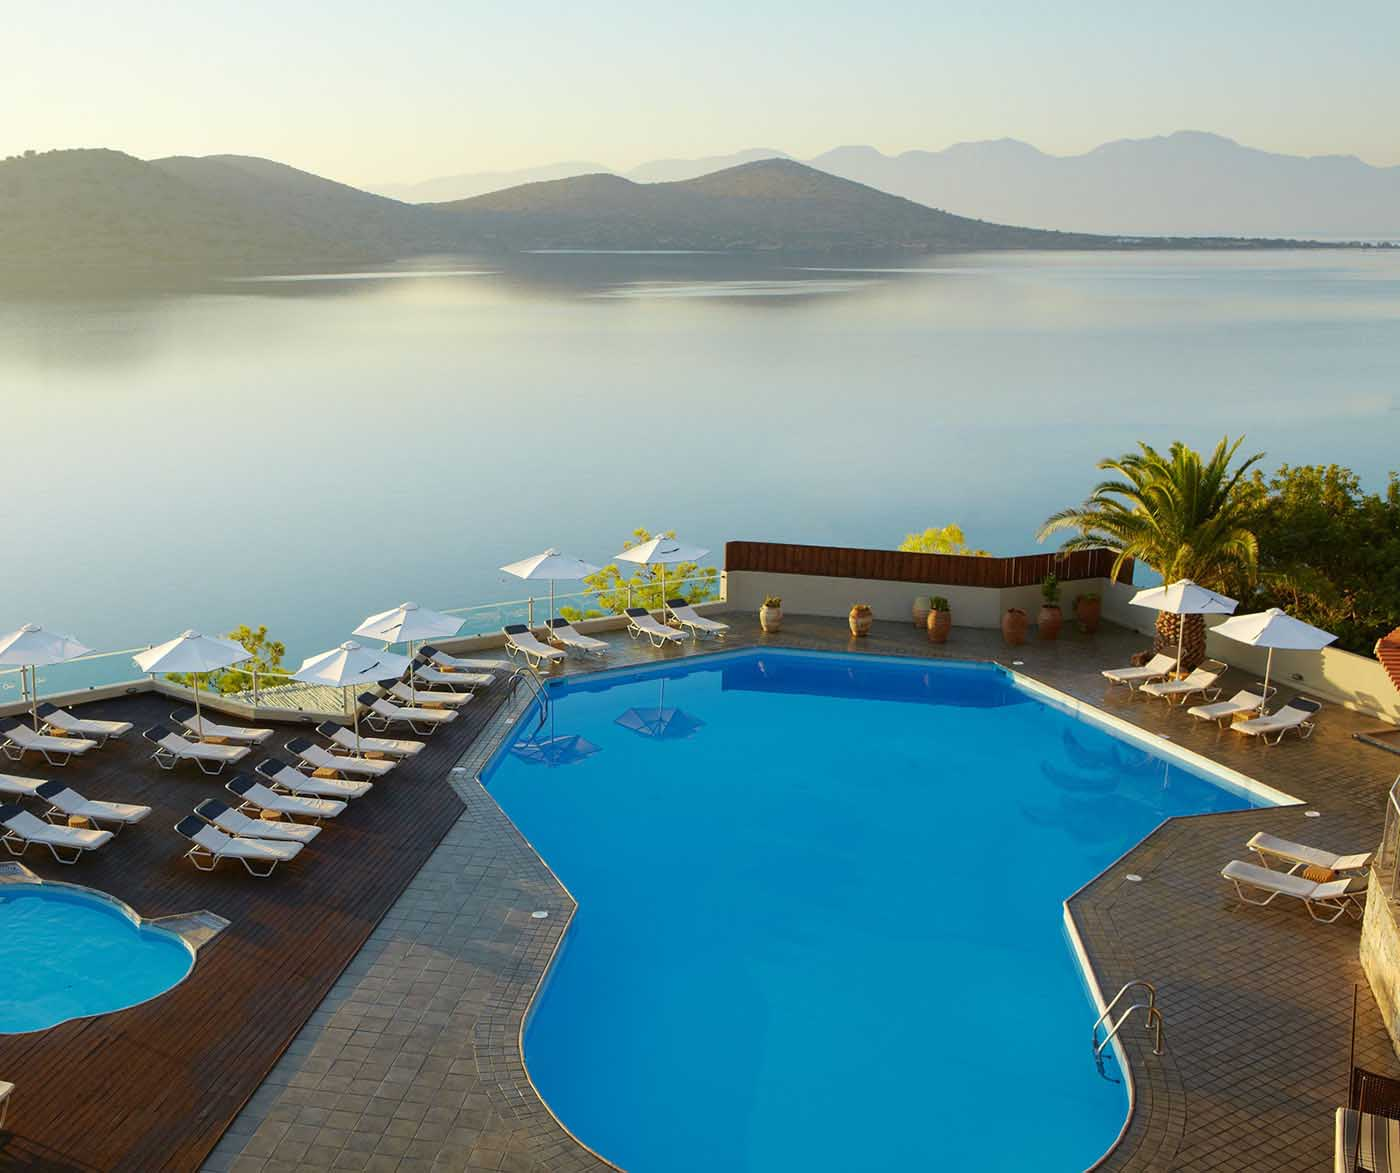 Drama hotels & resorts, 50% discount for early bookings, Drama, Macedonia, Greece